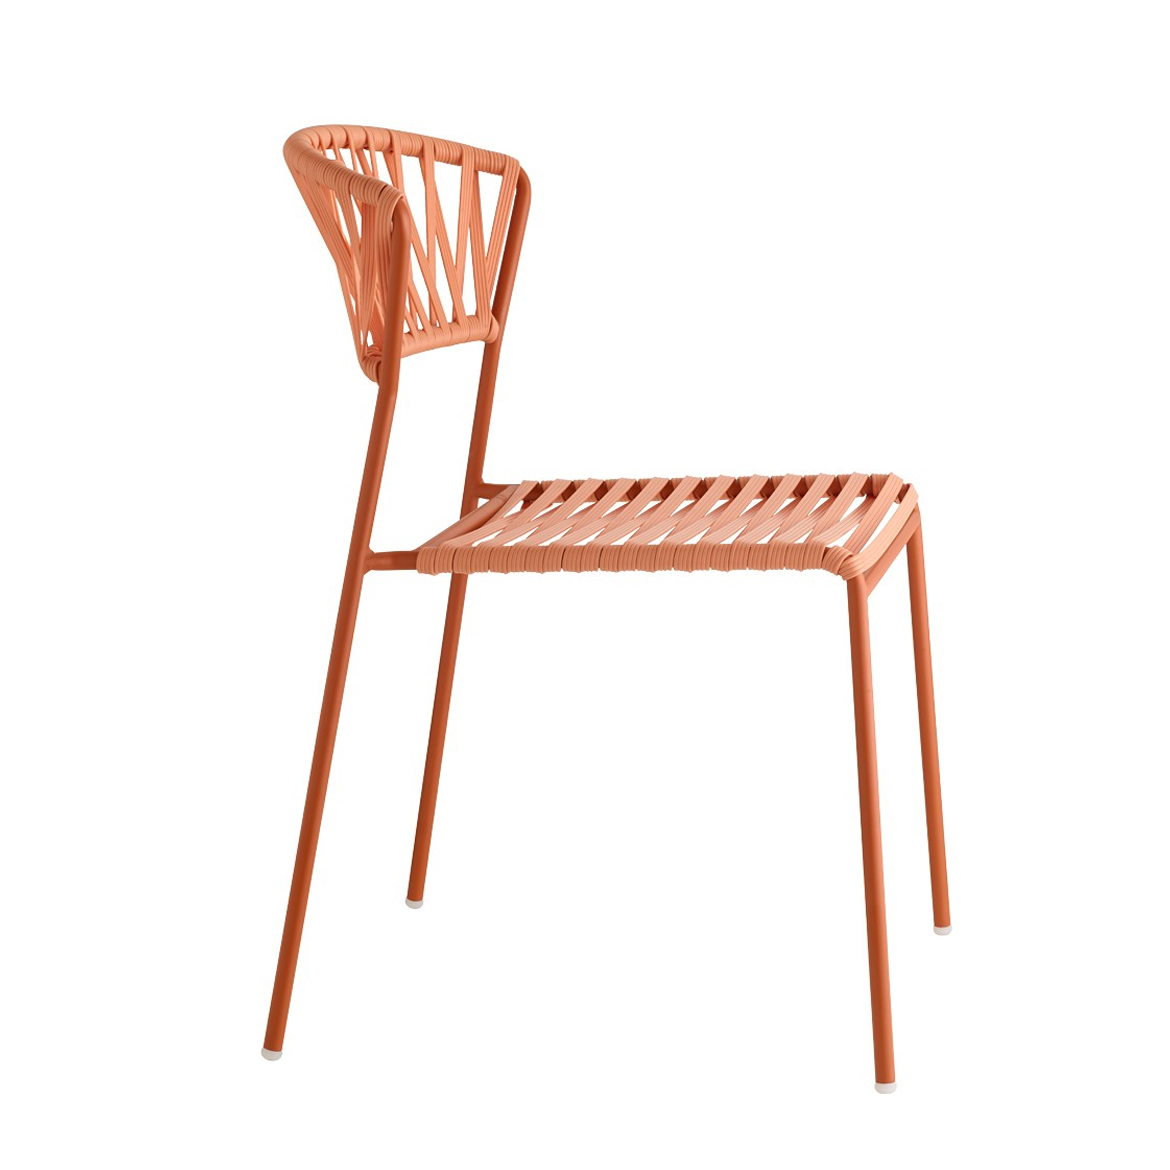 Seat and back: braided in extruded PVC reinforced with nylon wires. Stackable. For indoor/outdoor use. Frame and braiding are 100% demountable for a correct recycling process.